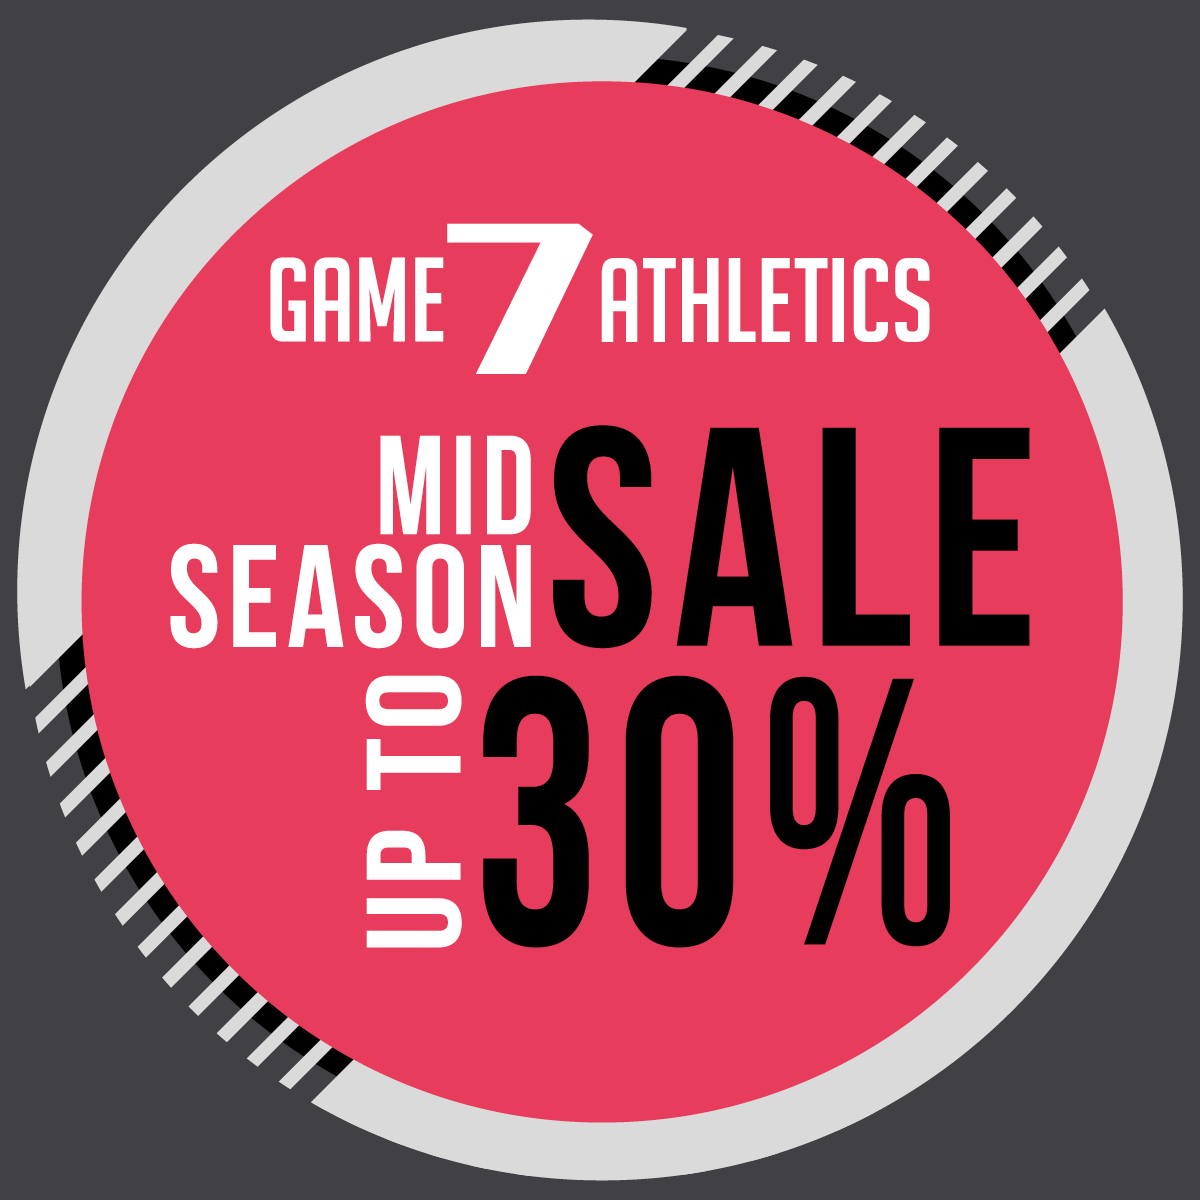 Mid season up to sale 30%